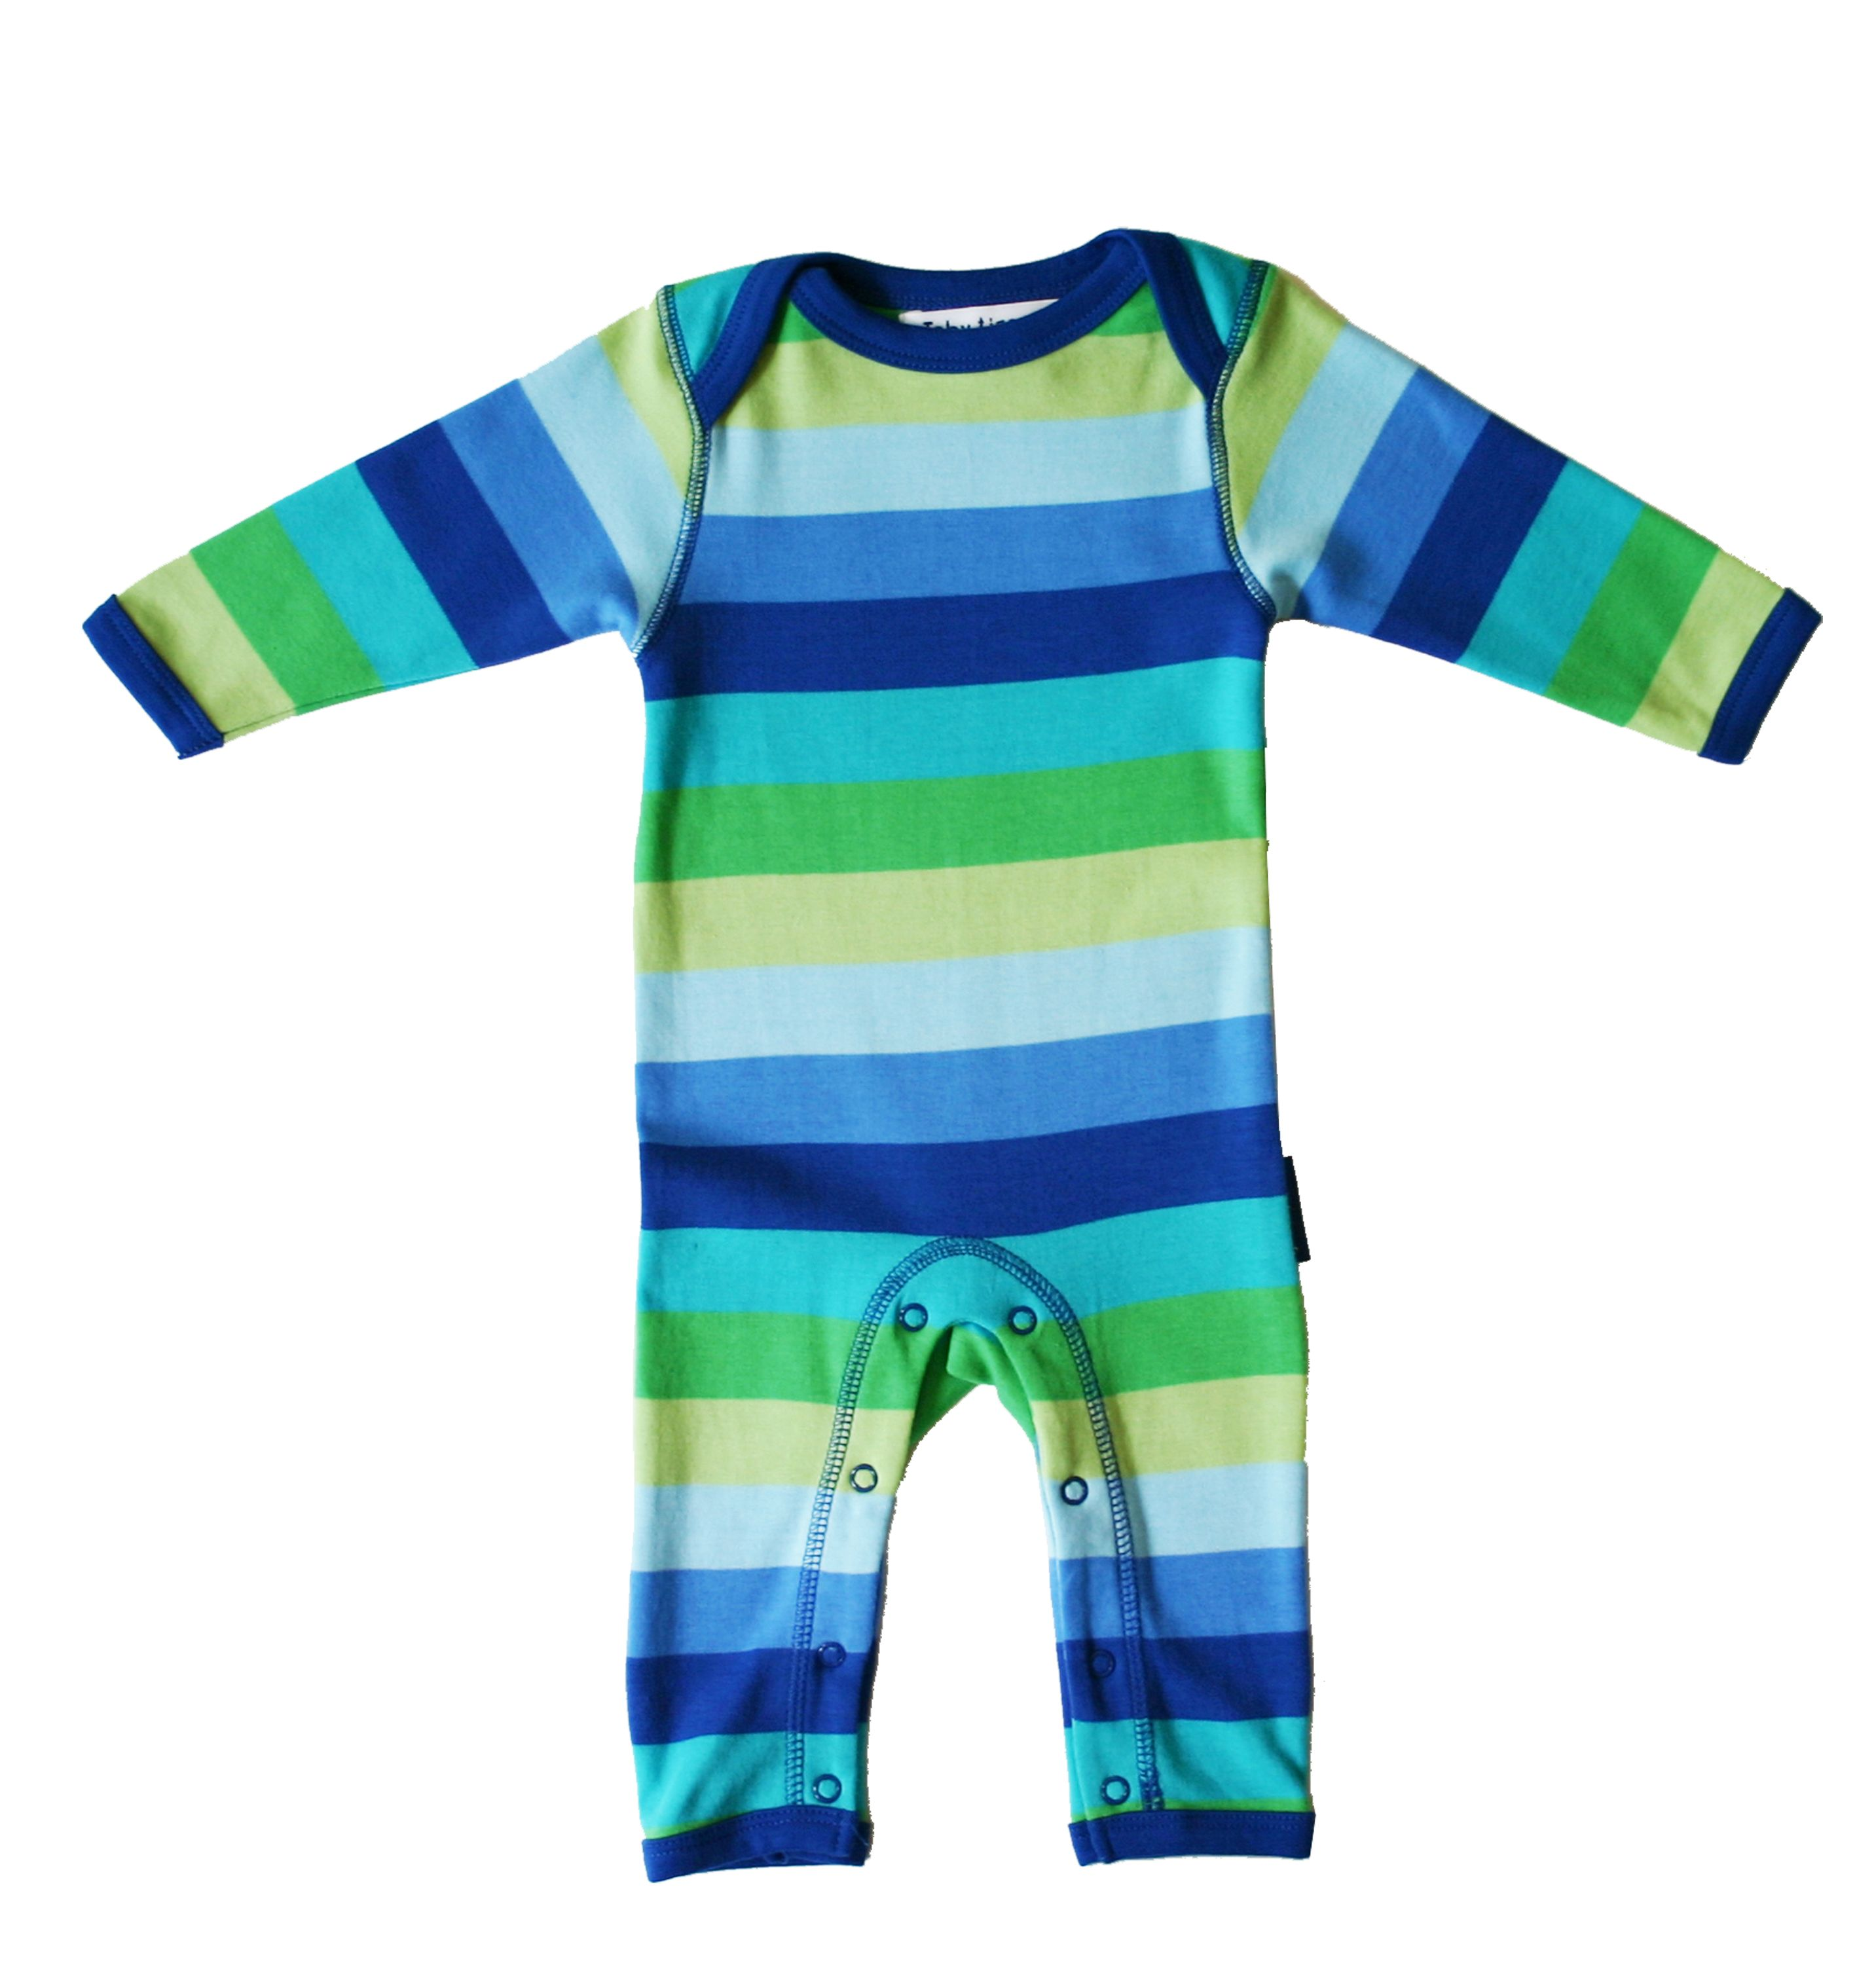 Toby Tiger Baby organic cotton blue sleepsuit, Blue